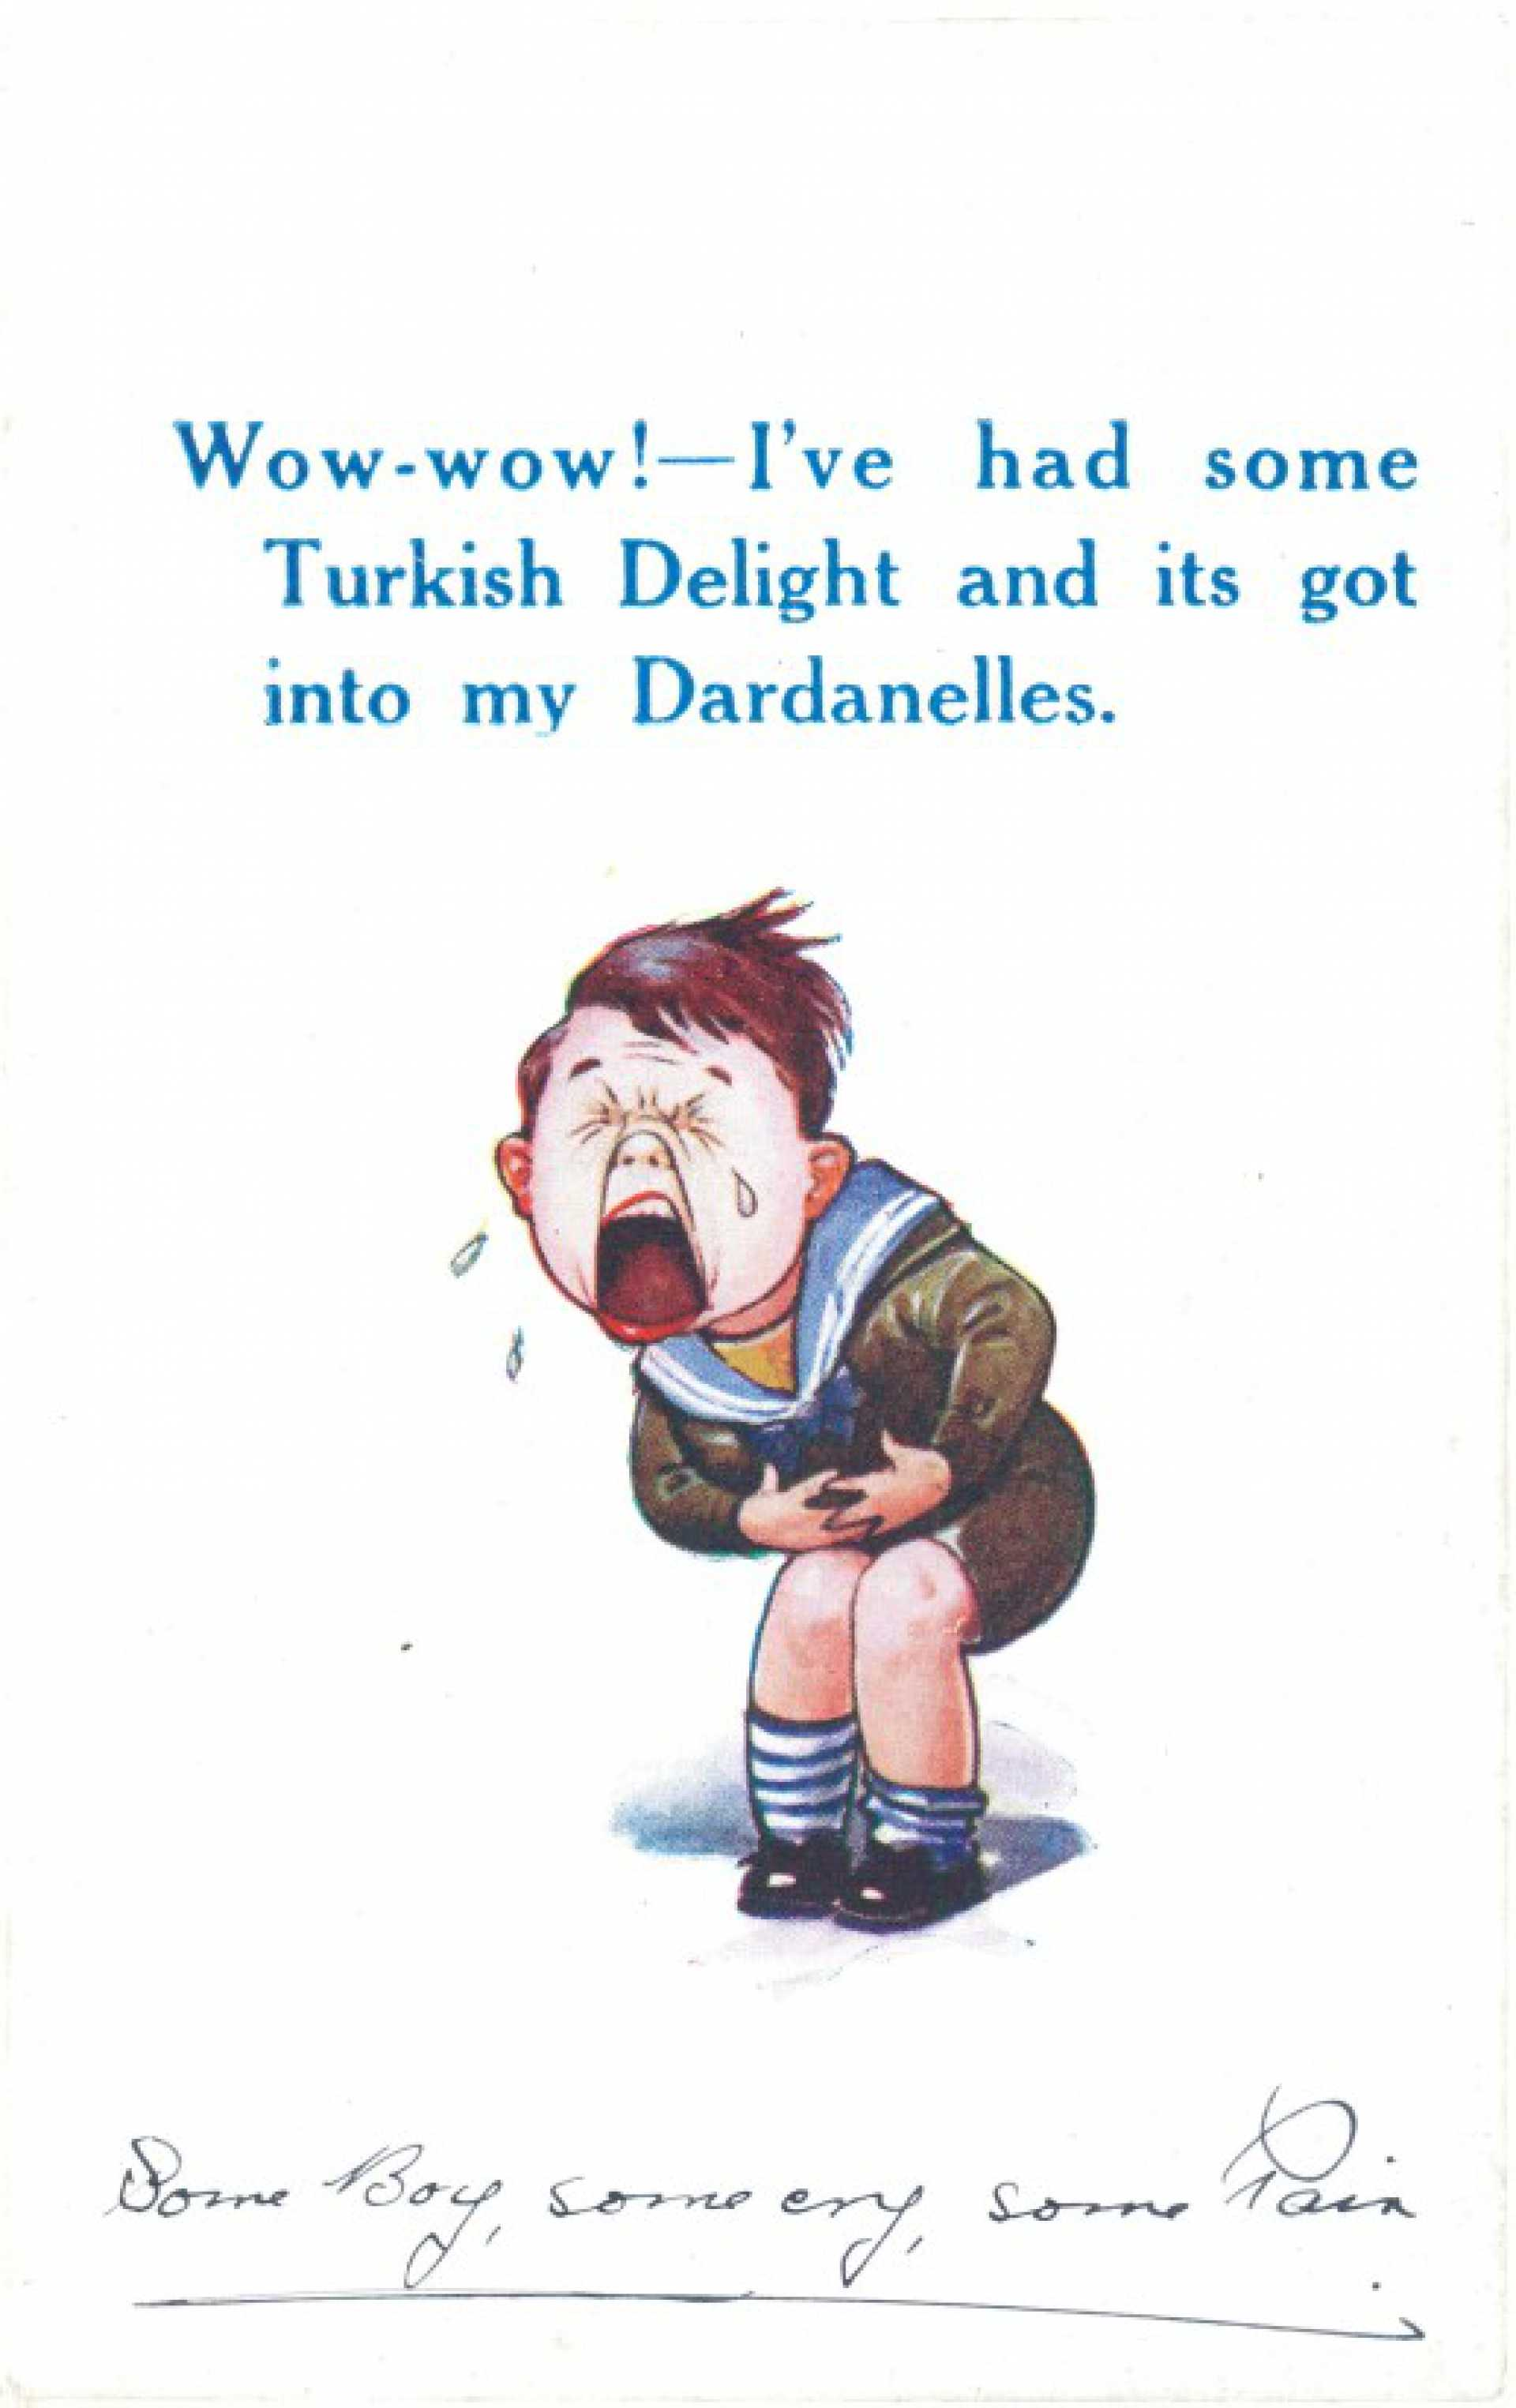 Wow-wow! I've had some Turkish delight and its got into my Dardanelles